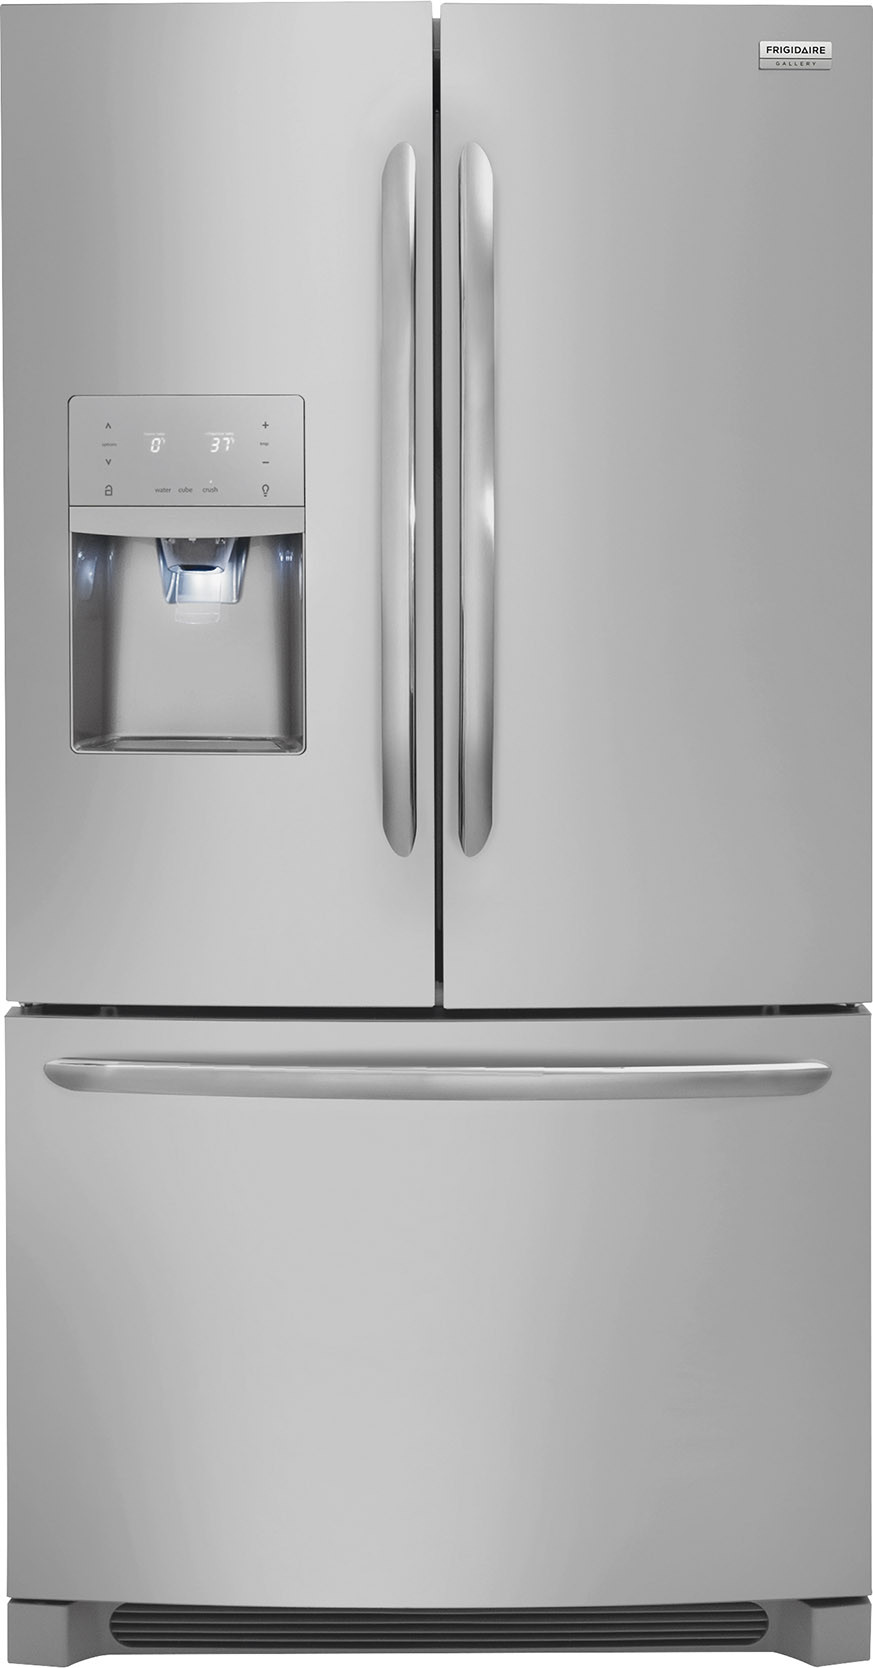 white french door refrigerator. White French Door Refrigerator T